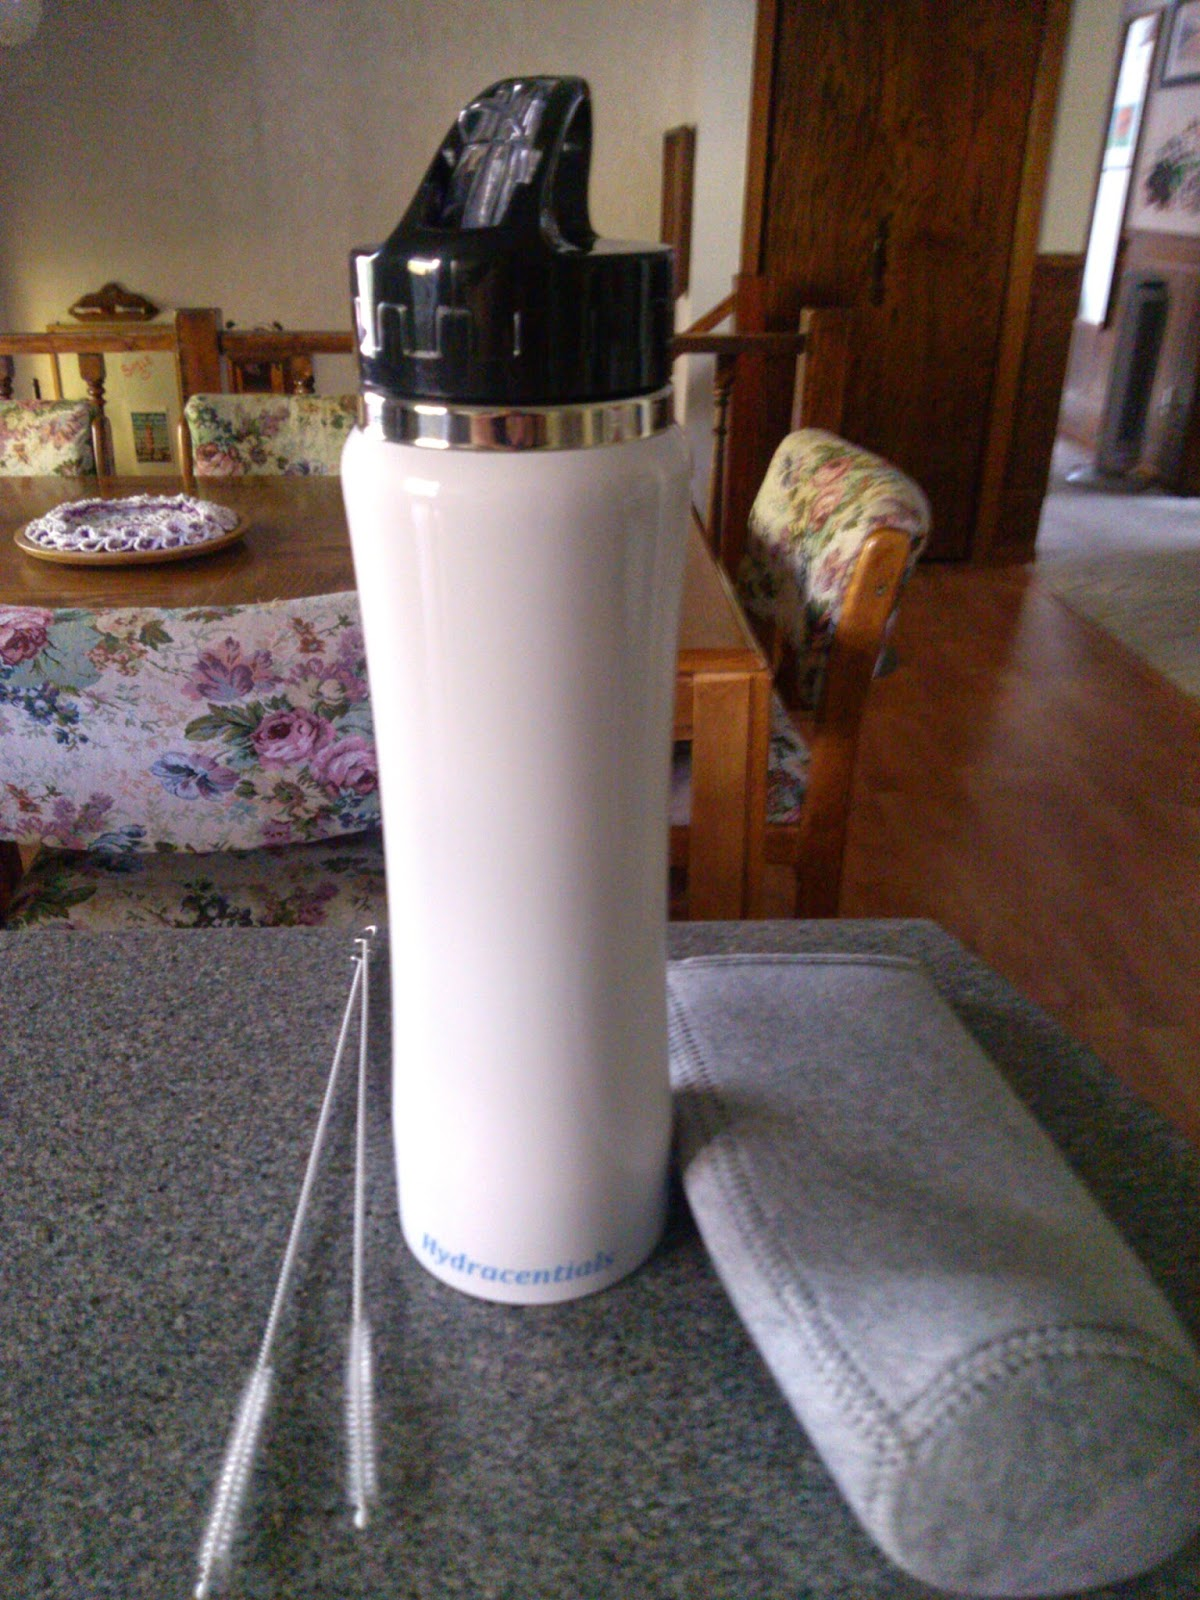 Hydracentials Insulated Stainless Steel Water Bottle Review